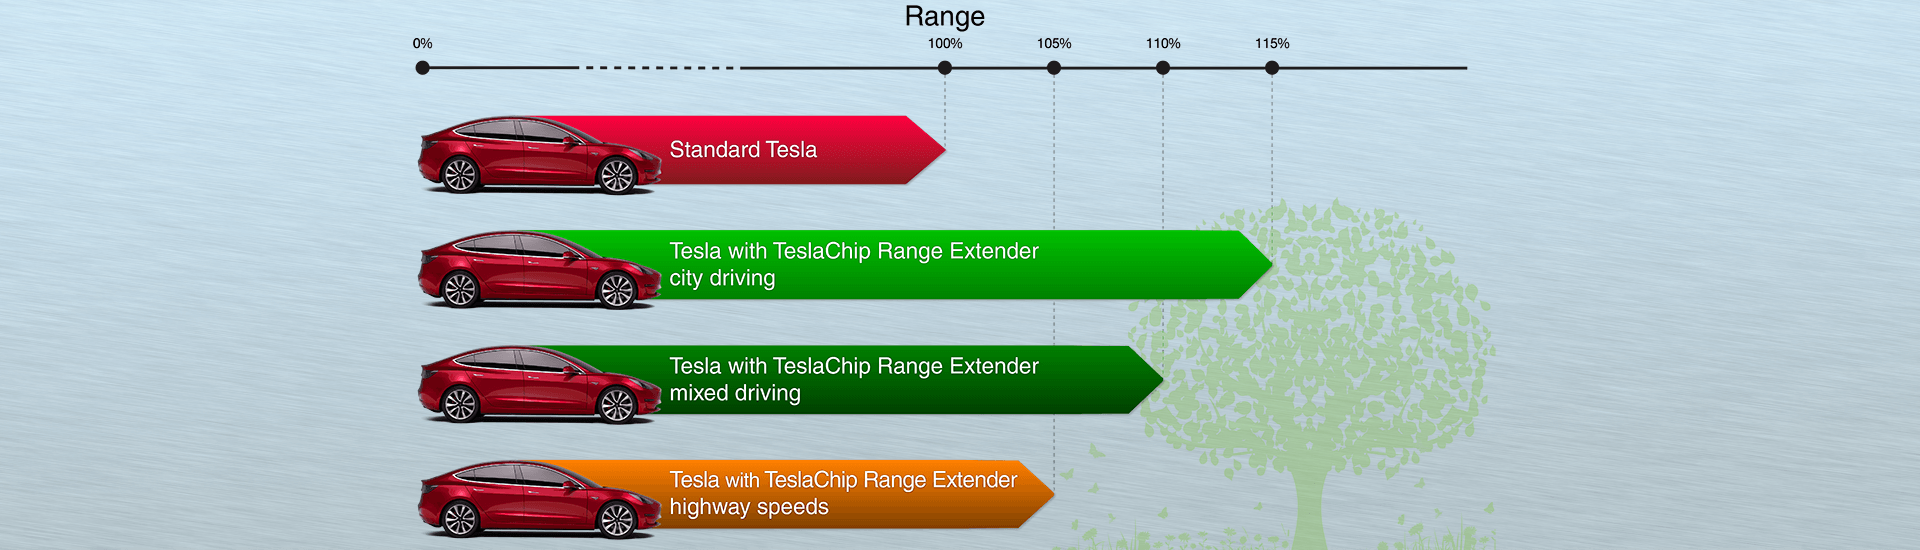 Range extender, improved regen in D, power, glide (roll) mode